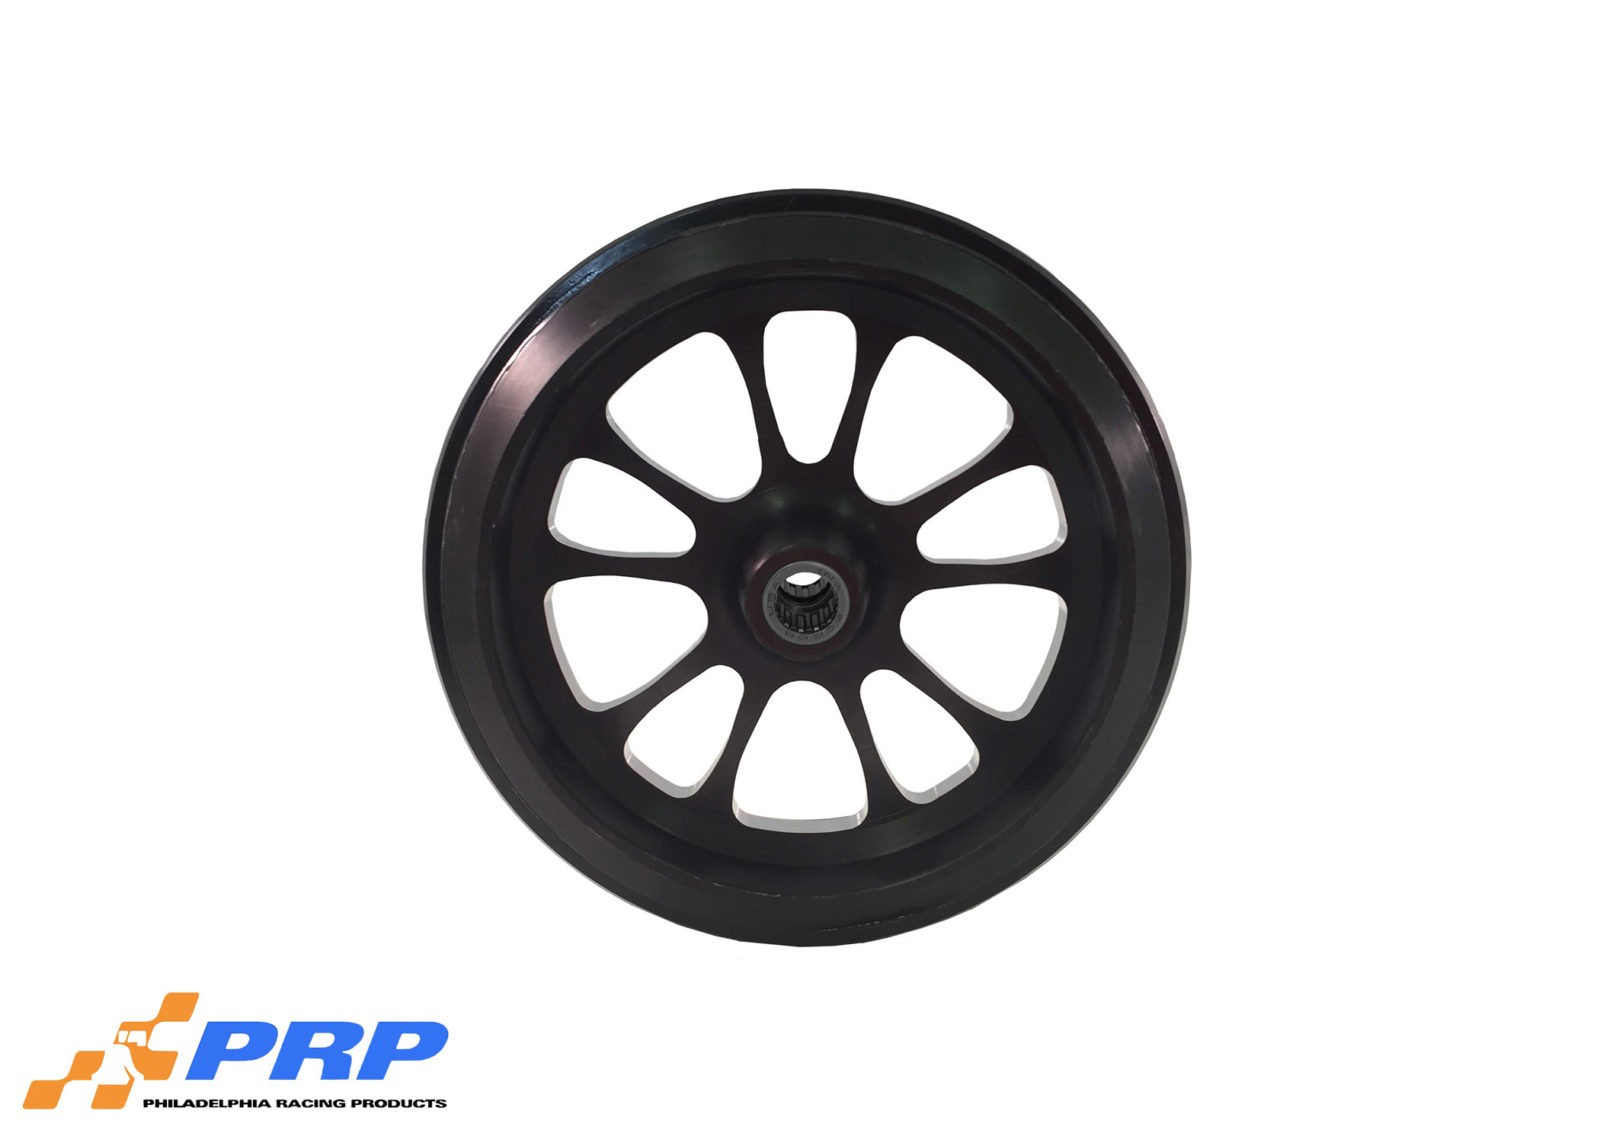 Black Anodized 10 Spoke Style with Bearing made by PRP Racing Products